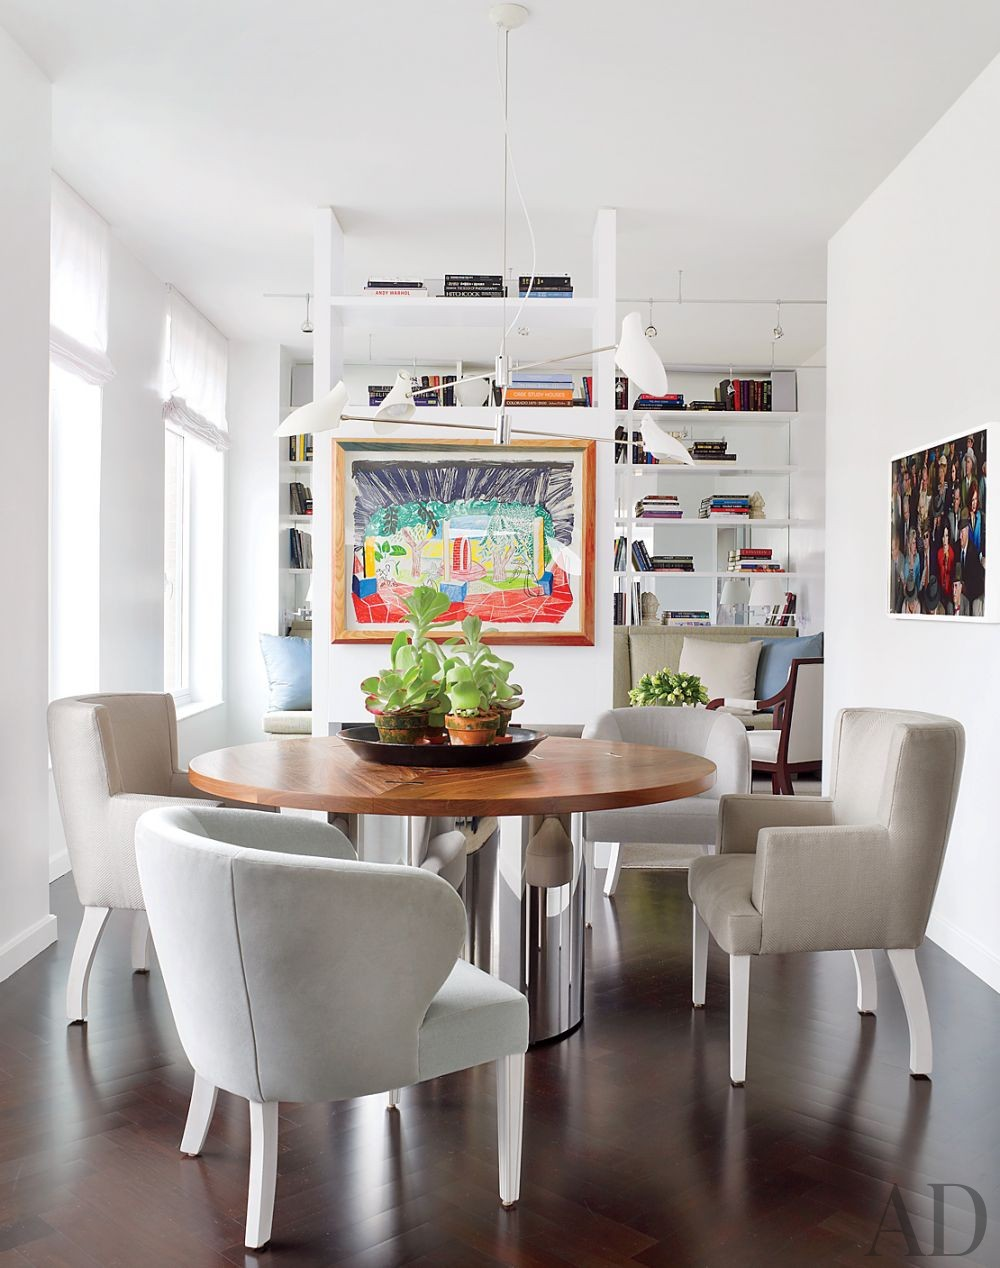 Modern Dining Room by Vicente Wolf Associates Inc. in New York, New York